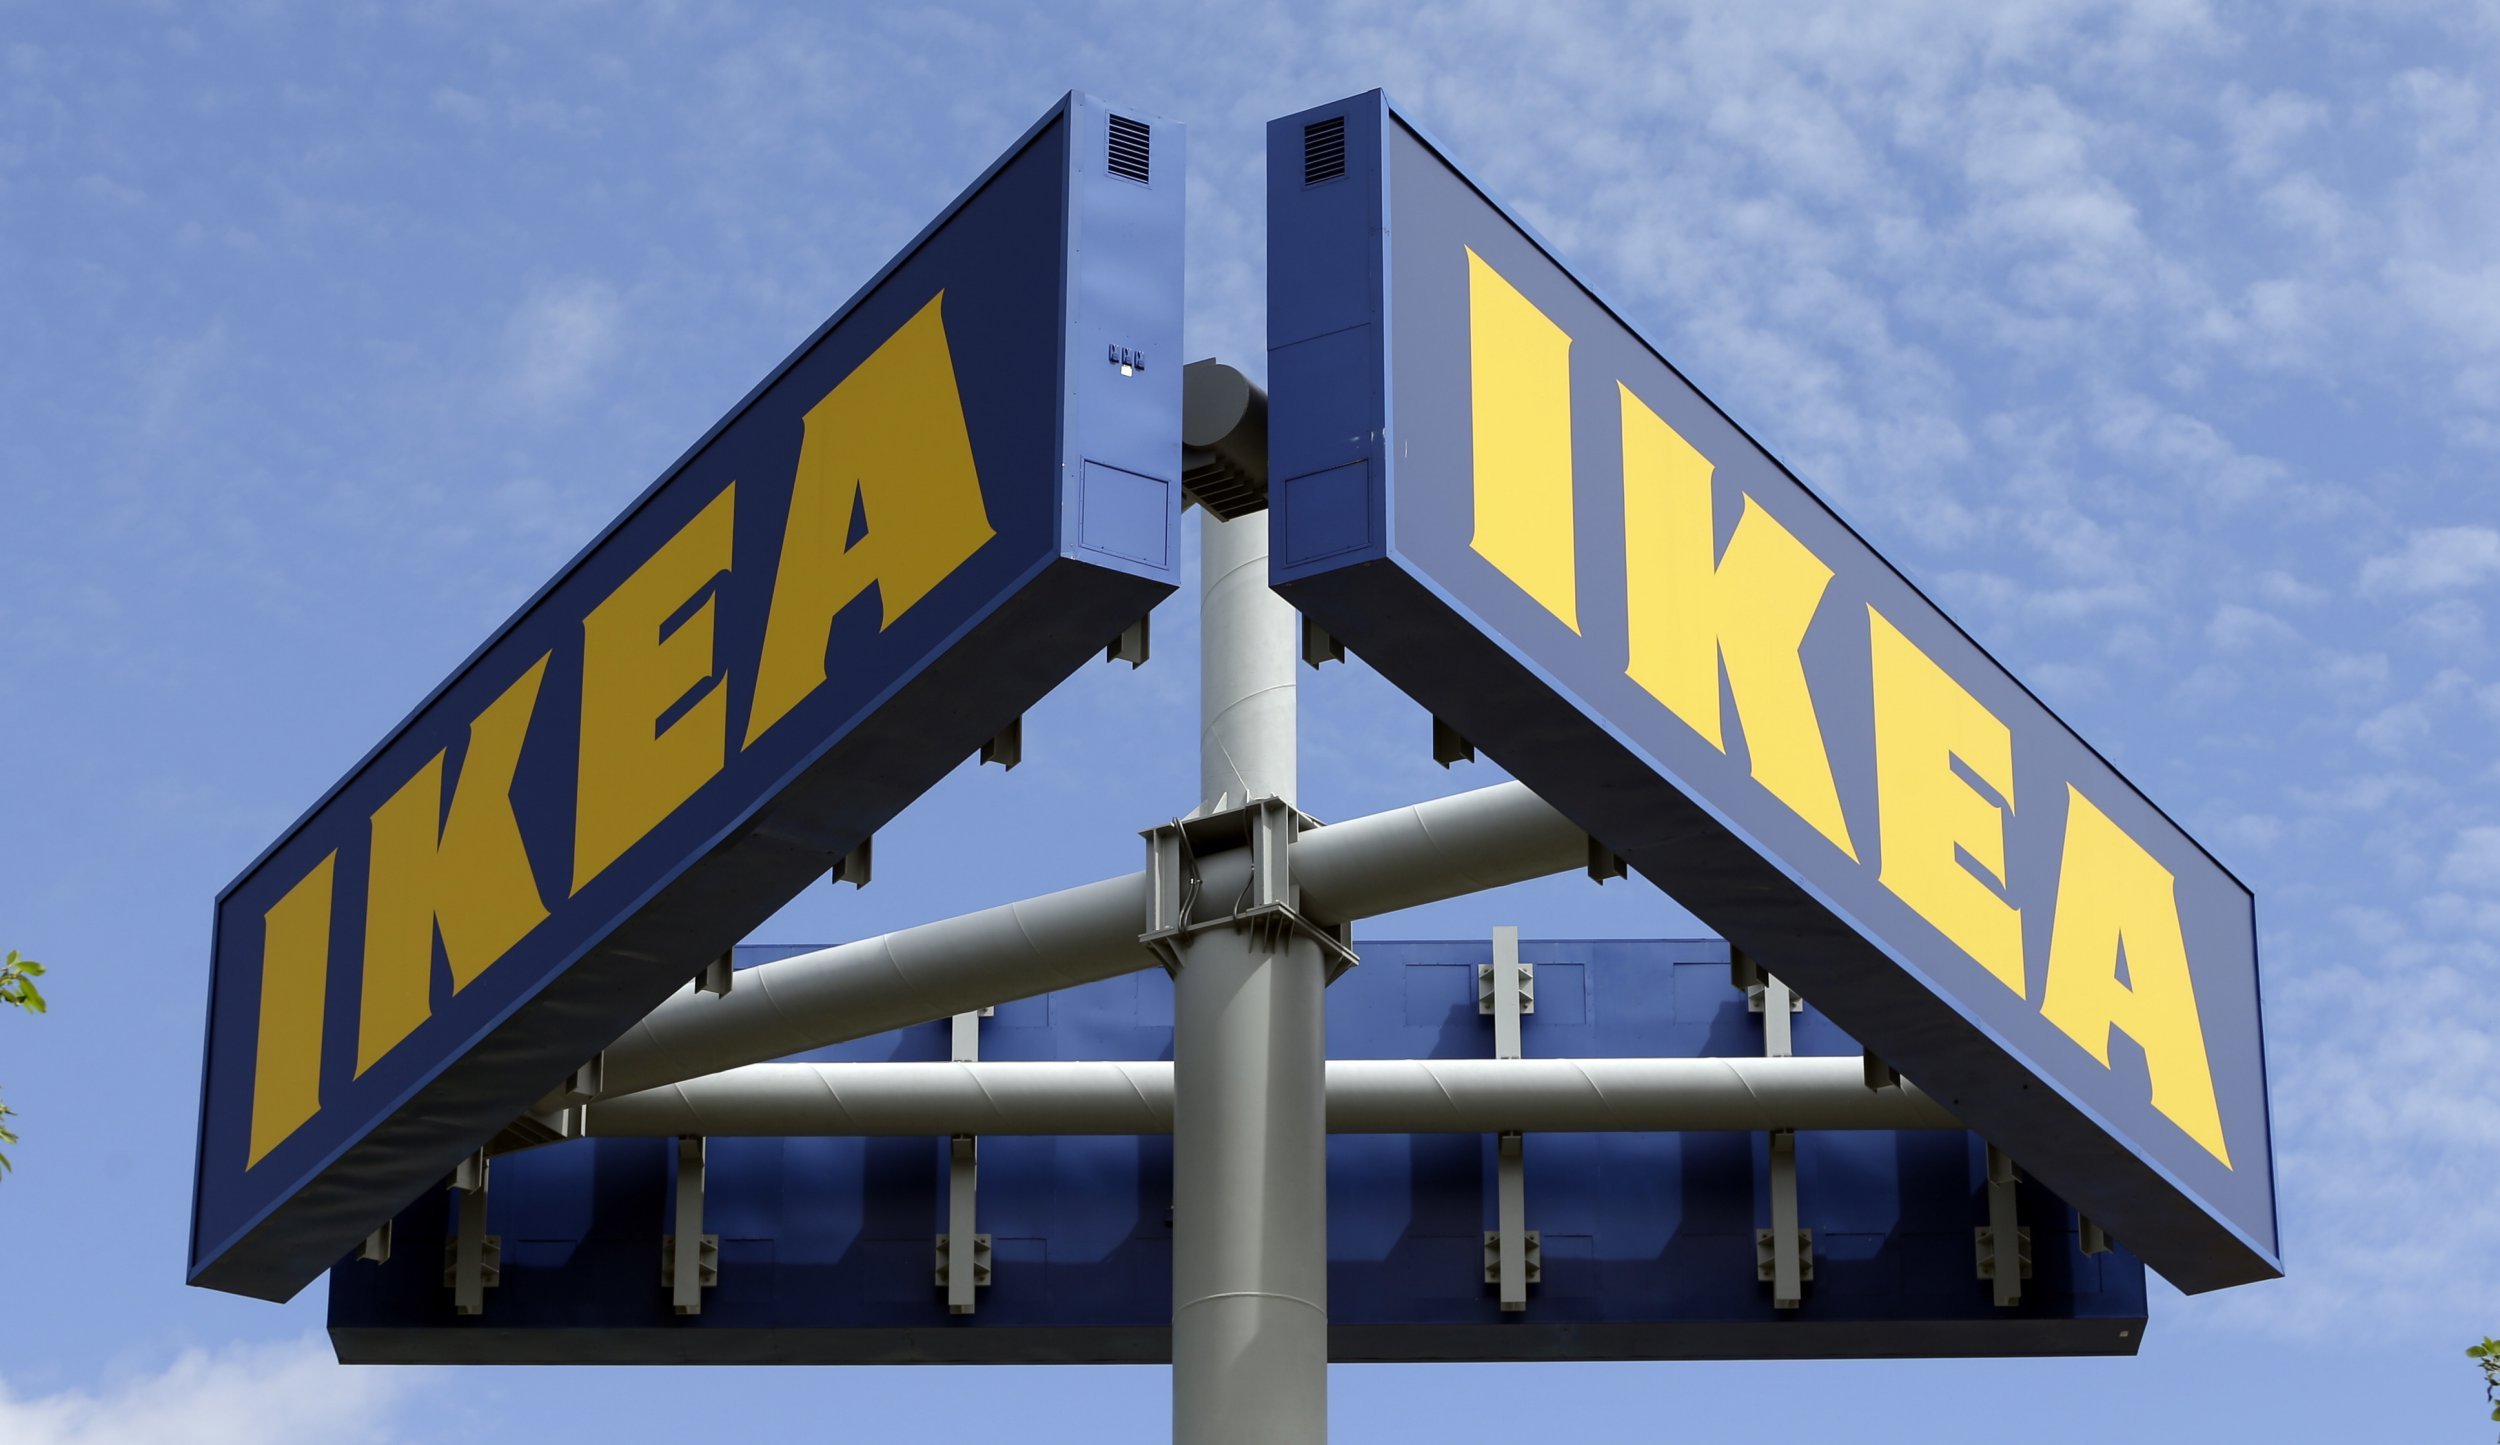 Ikea Bank Holiday Opening Times Warrington Ikea Opening Hours For New Year S Eve And New Year S Day